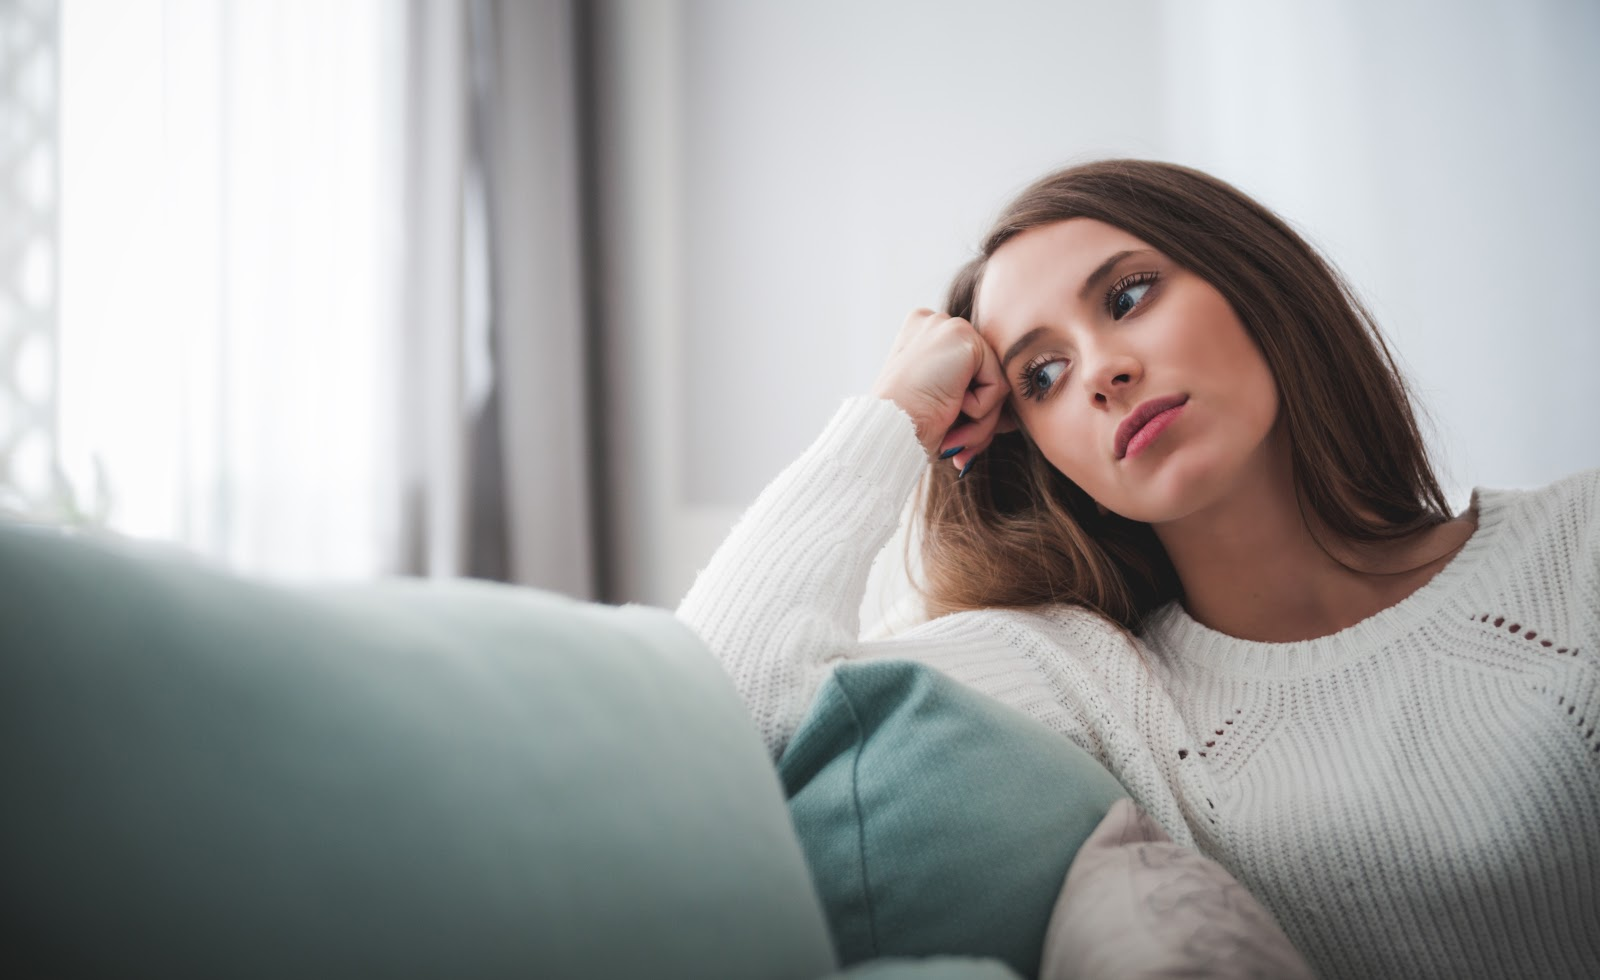 A woman sitting on the couch, deep in thought